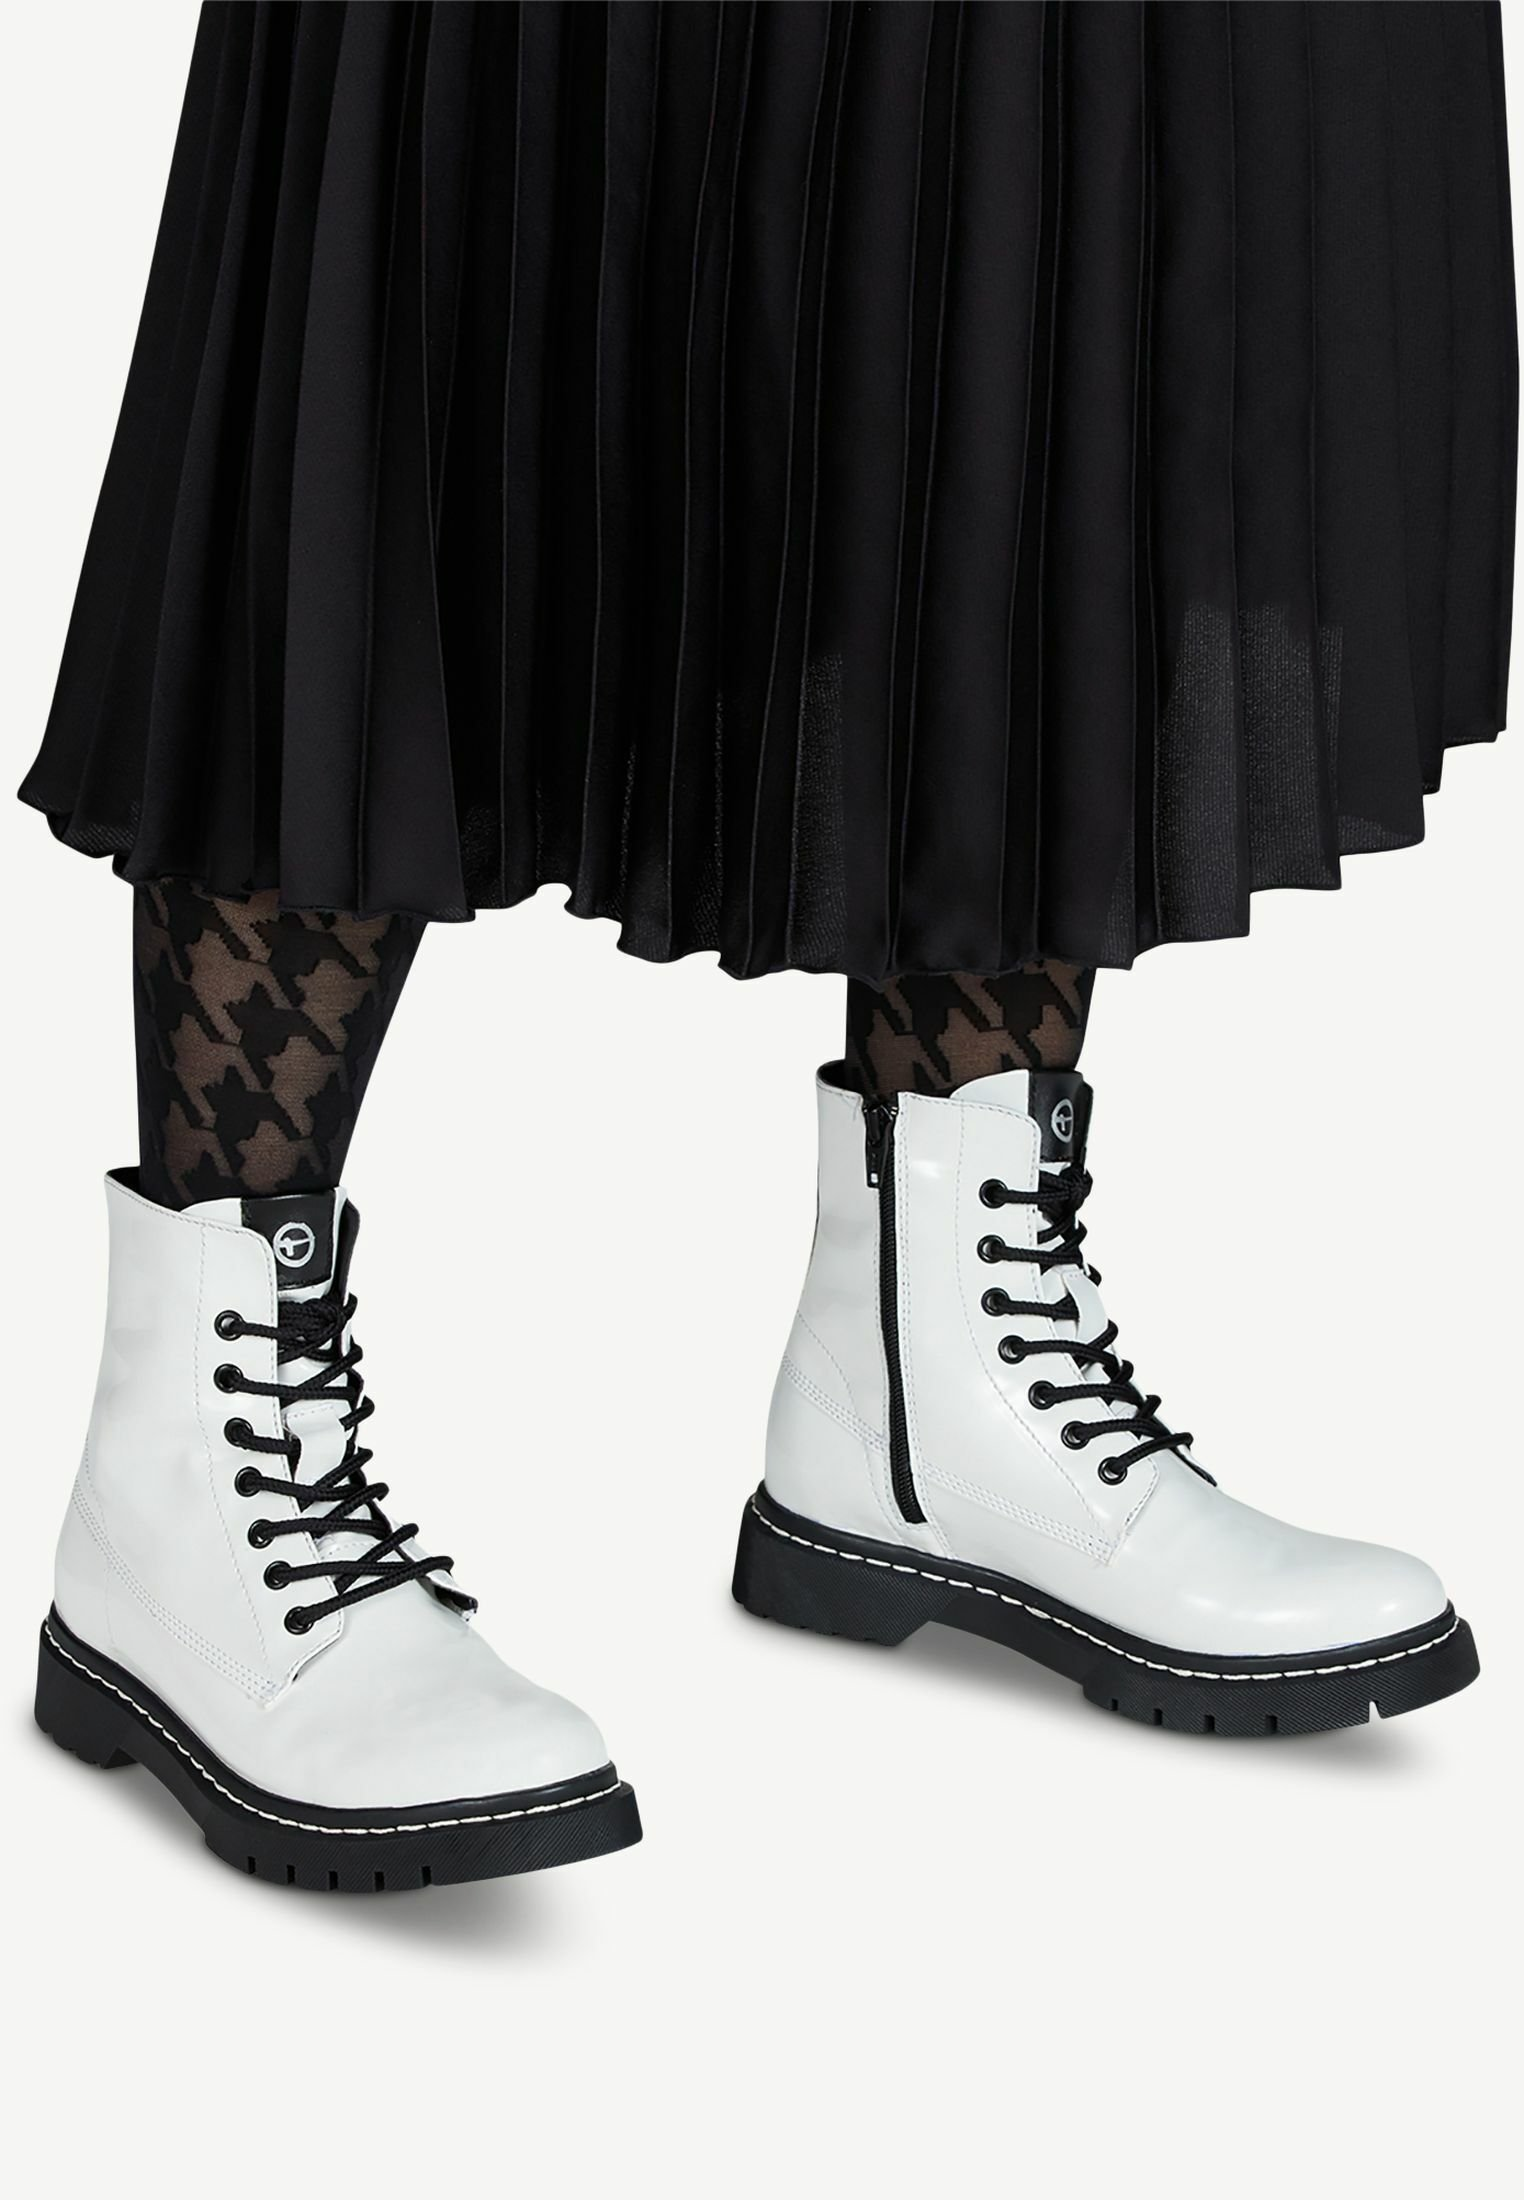 Limit Offer Cheap Women's Shoes Tamaris BOOTS Platform ankle boots white patent 5oFTihsiw